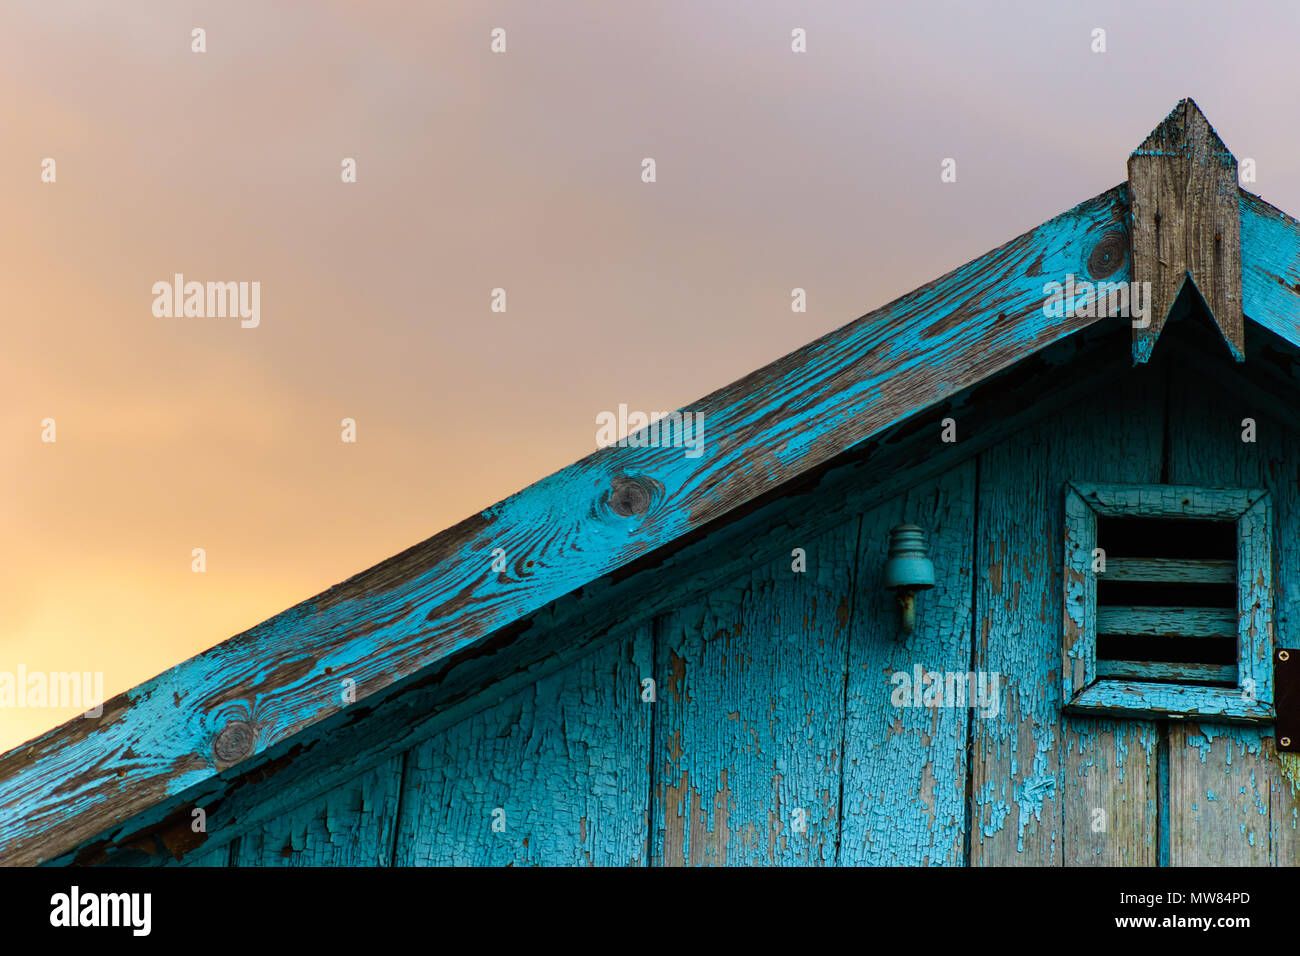 old roof with shabby blue paint - Stock Image